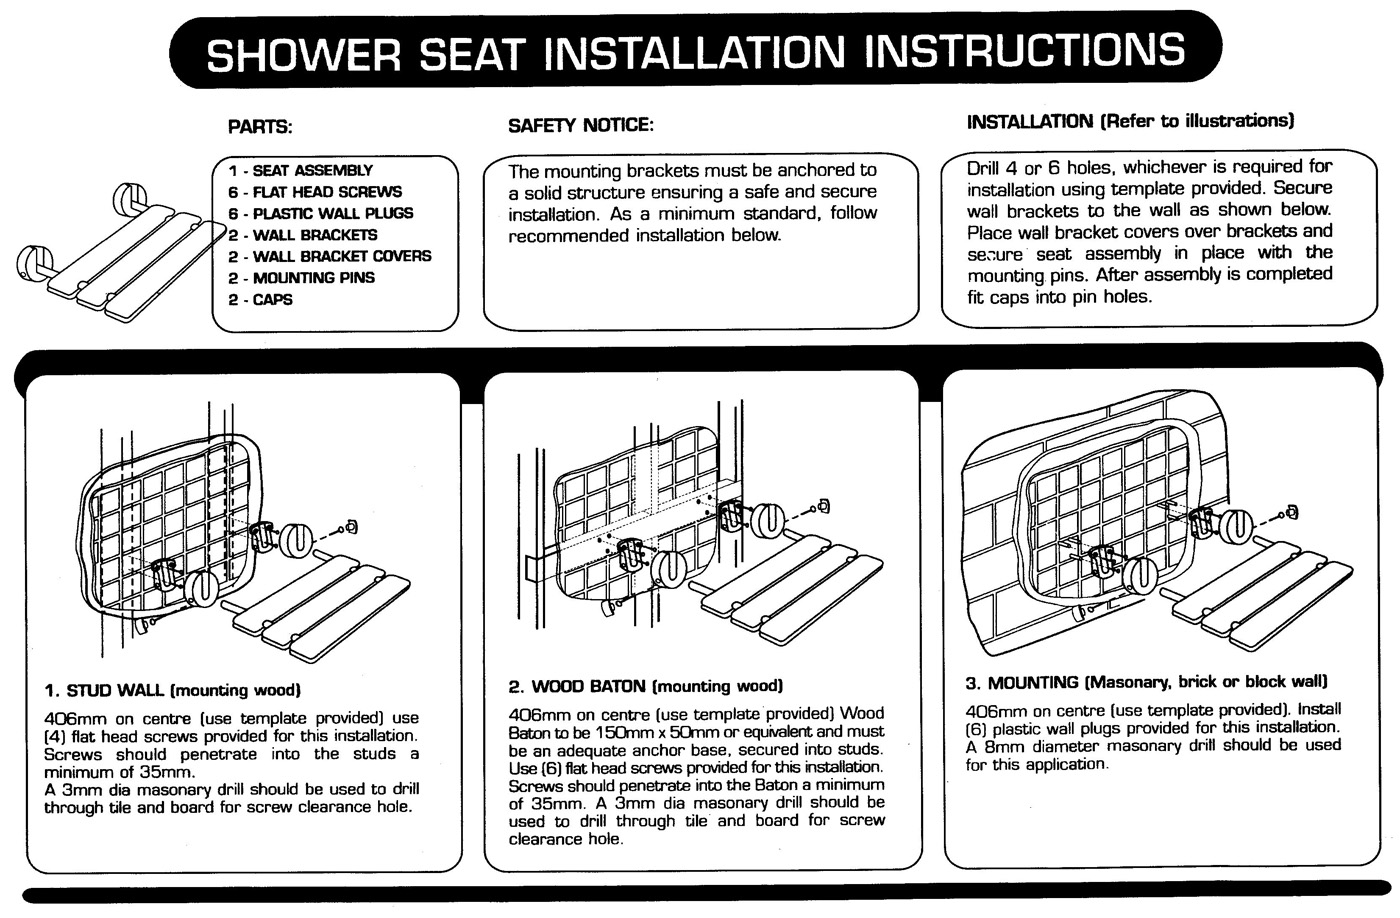 HOIS259613 Shower Seat Install Instructions | Knowledge Base